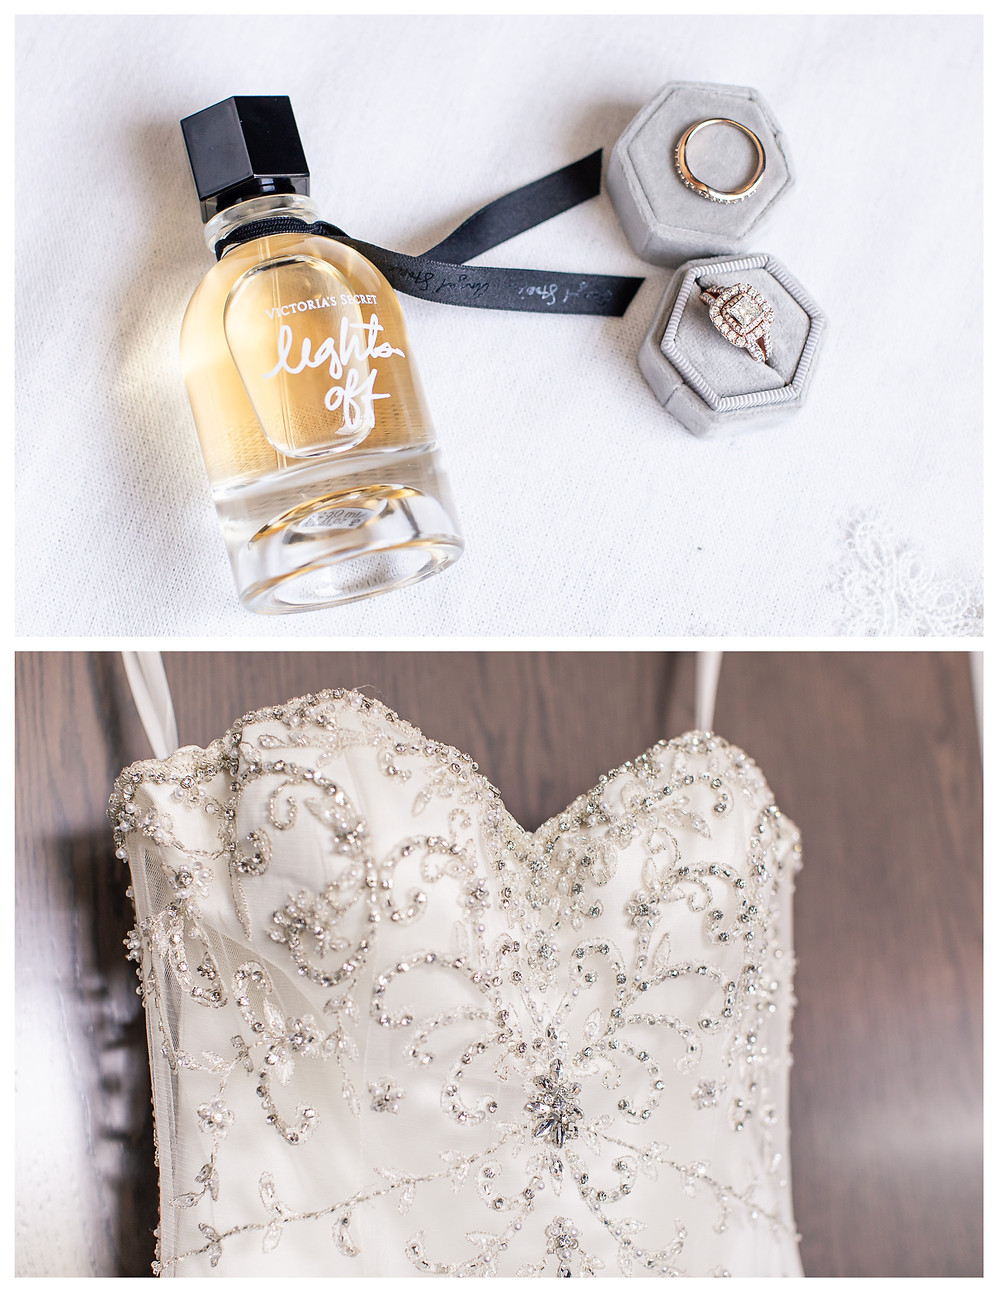 Joliet wedding photographer summer weddings burgandy gold and navy wedding gown victoria secret ring box ring wedding